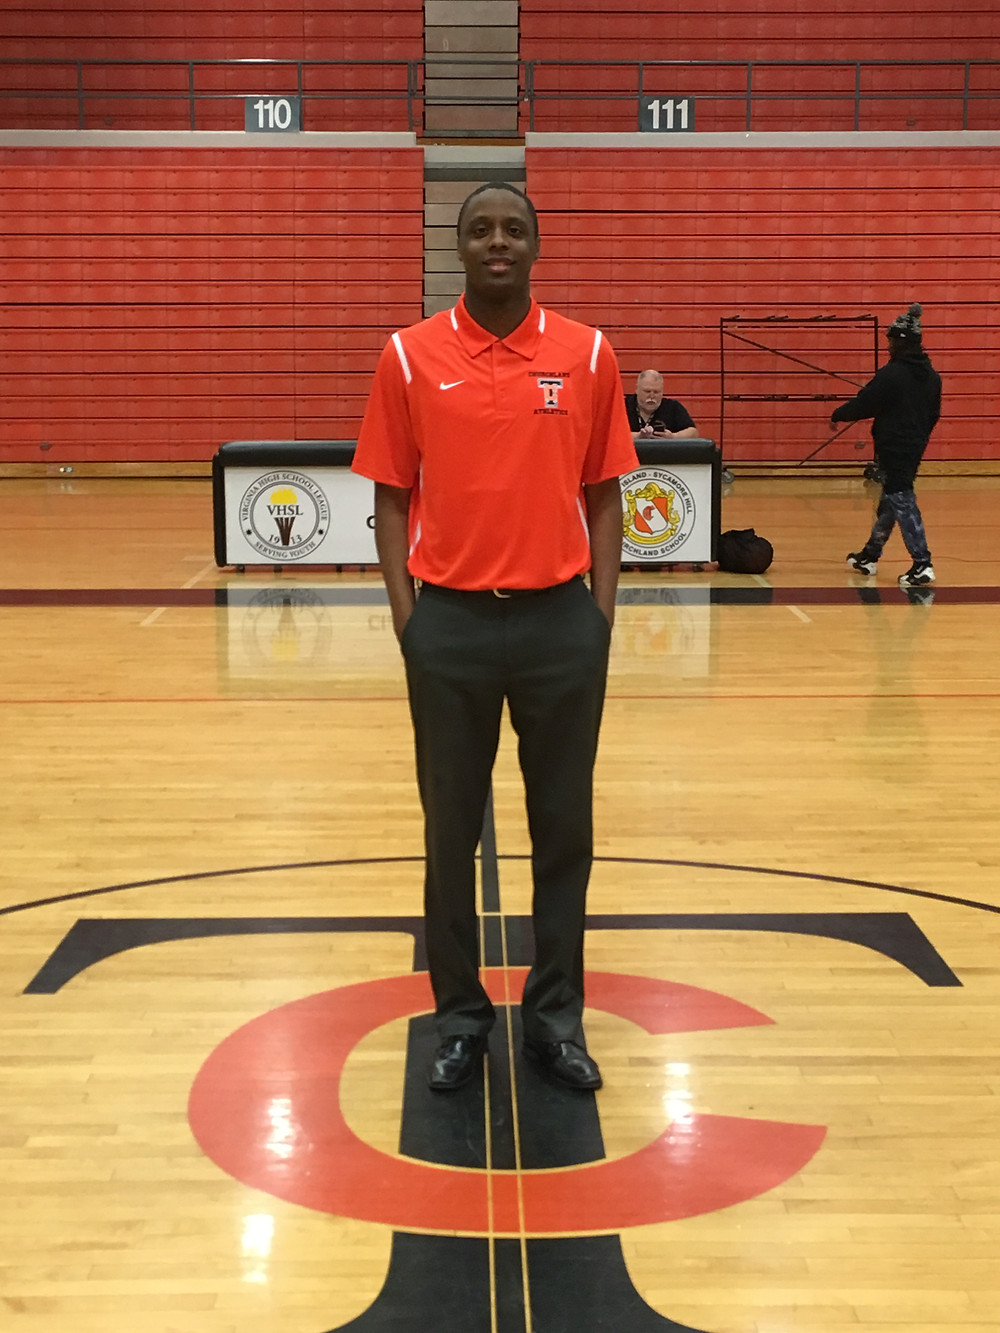 Coach Green standing in the center of the Churchland High School basketball court.